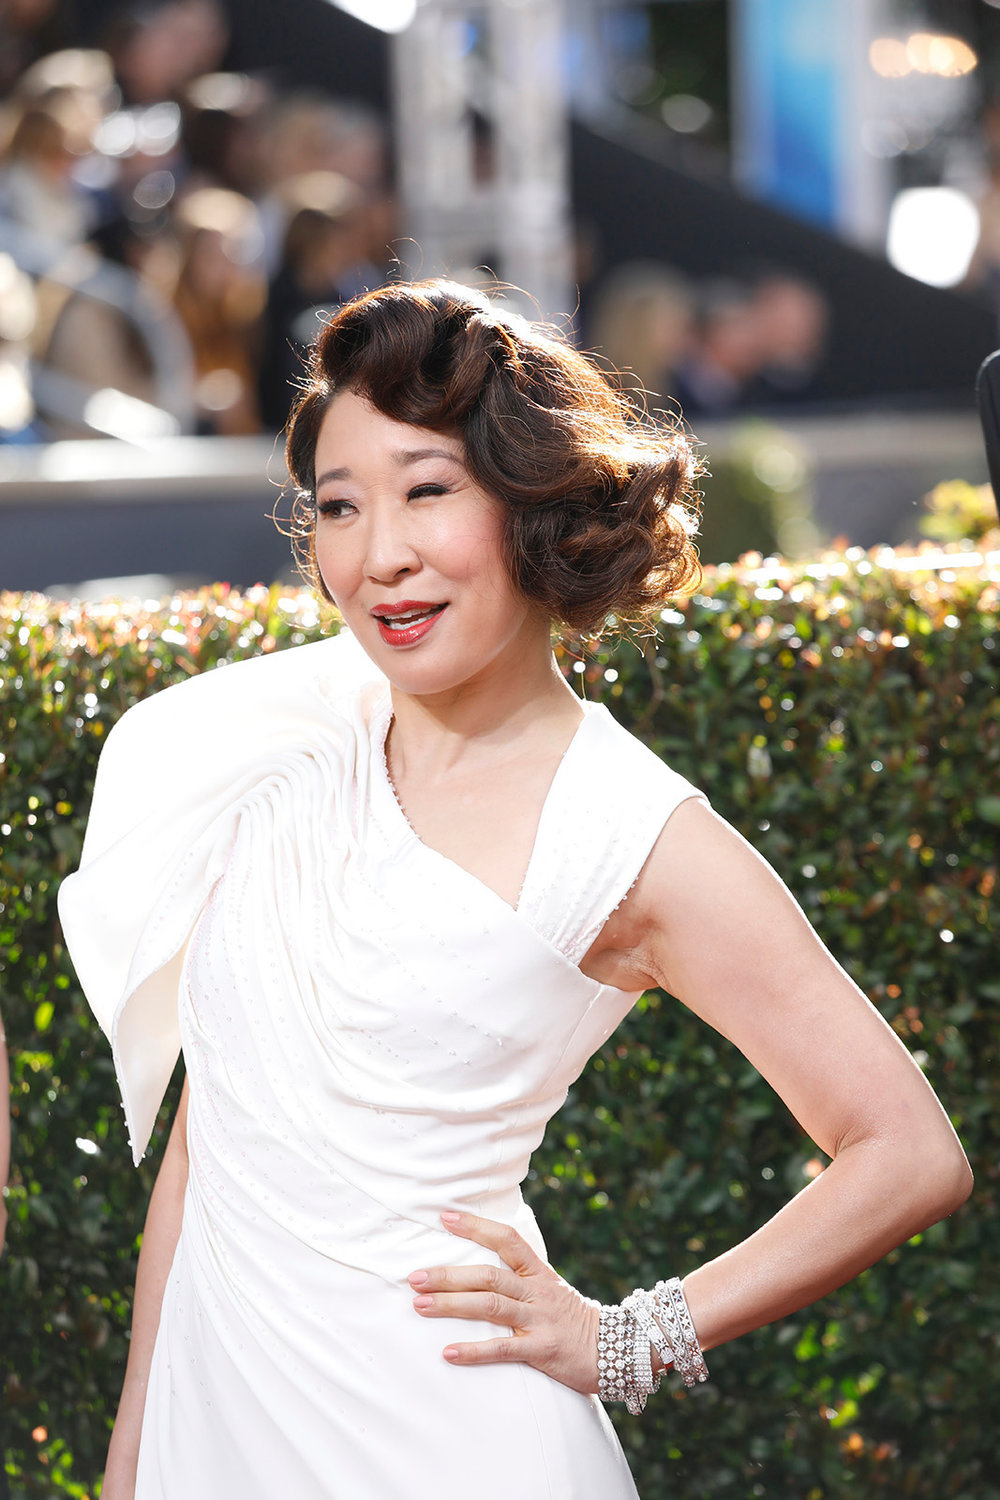 Sandra Oh arrives at the 76th Annual Golden Globes at the Beverly Hilton Hotel in Beverly Hills, Calif., on Sunday, Jan. 6, 2019. (Jay L. Clendenin/Los Angeles Times/TNS)